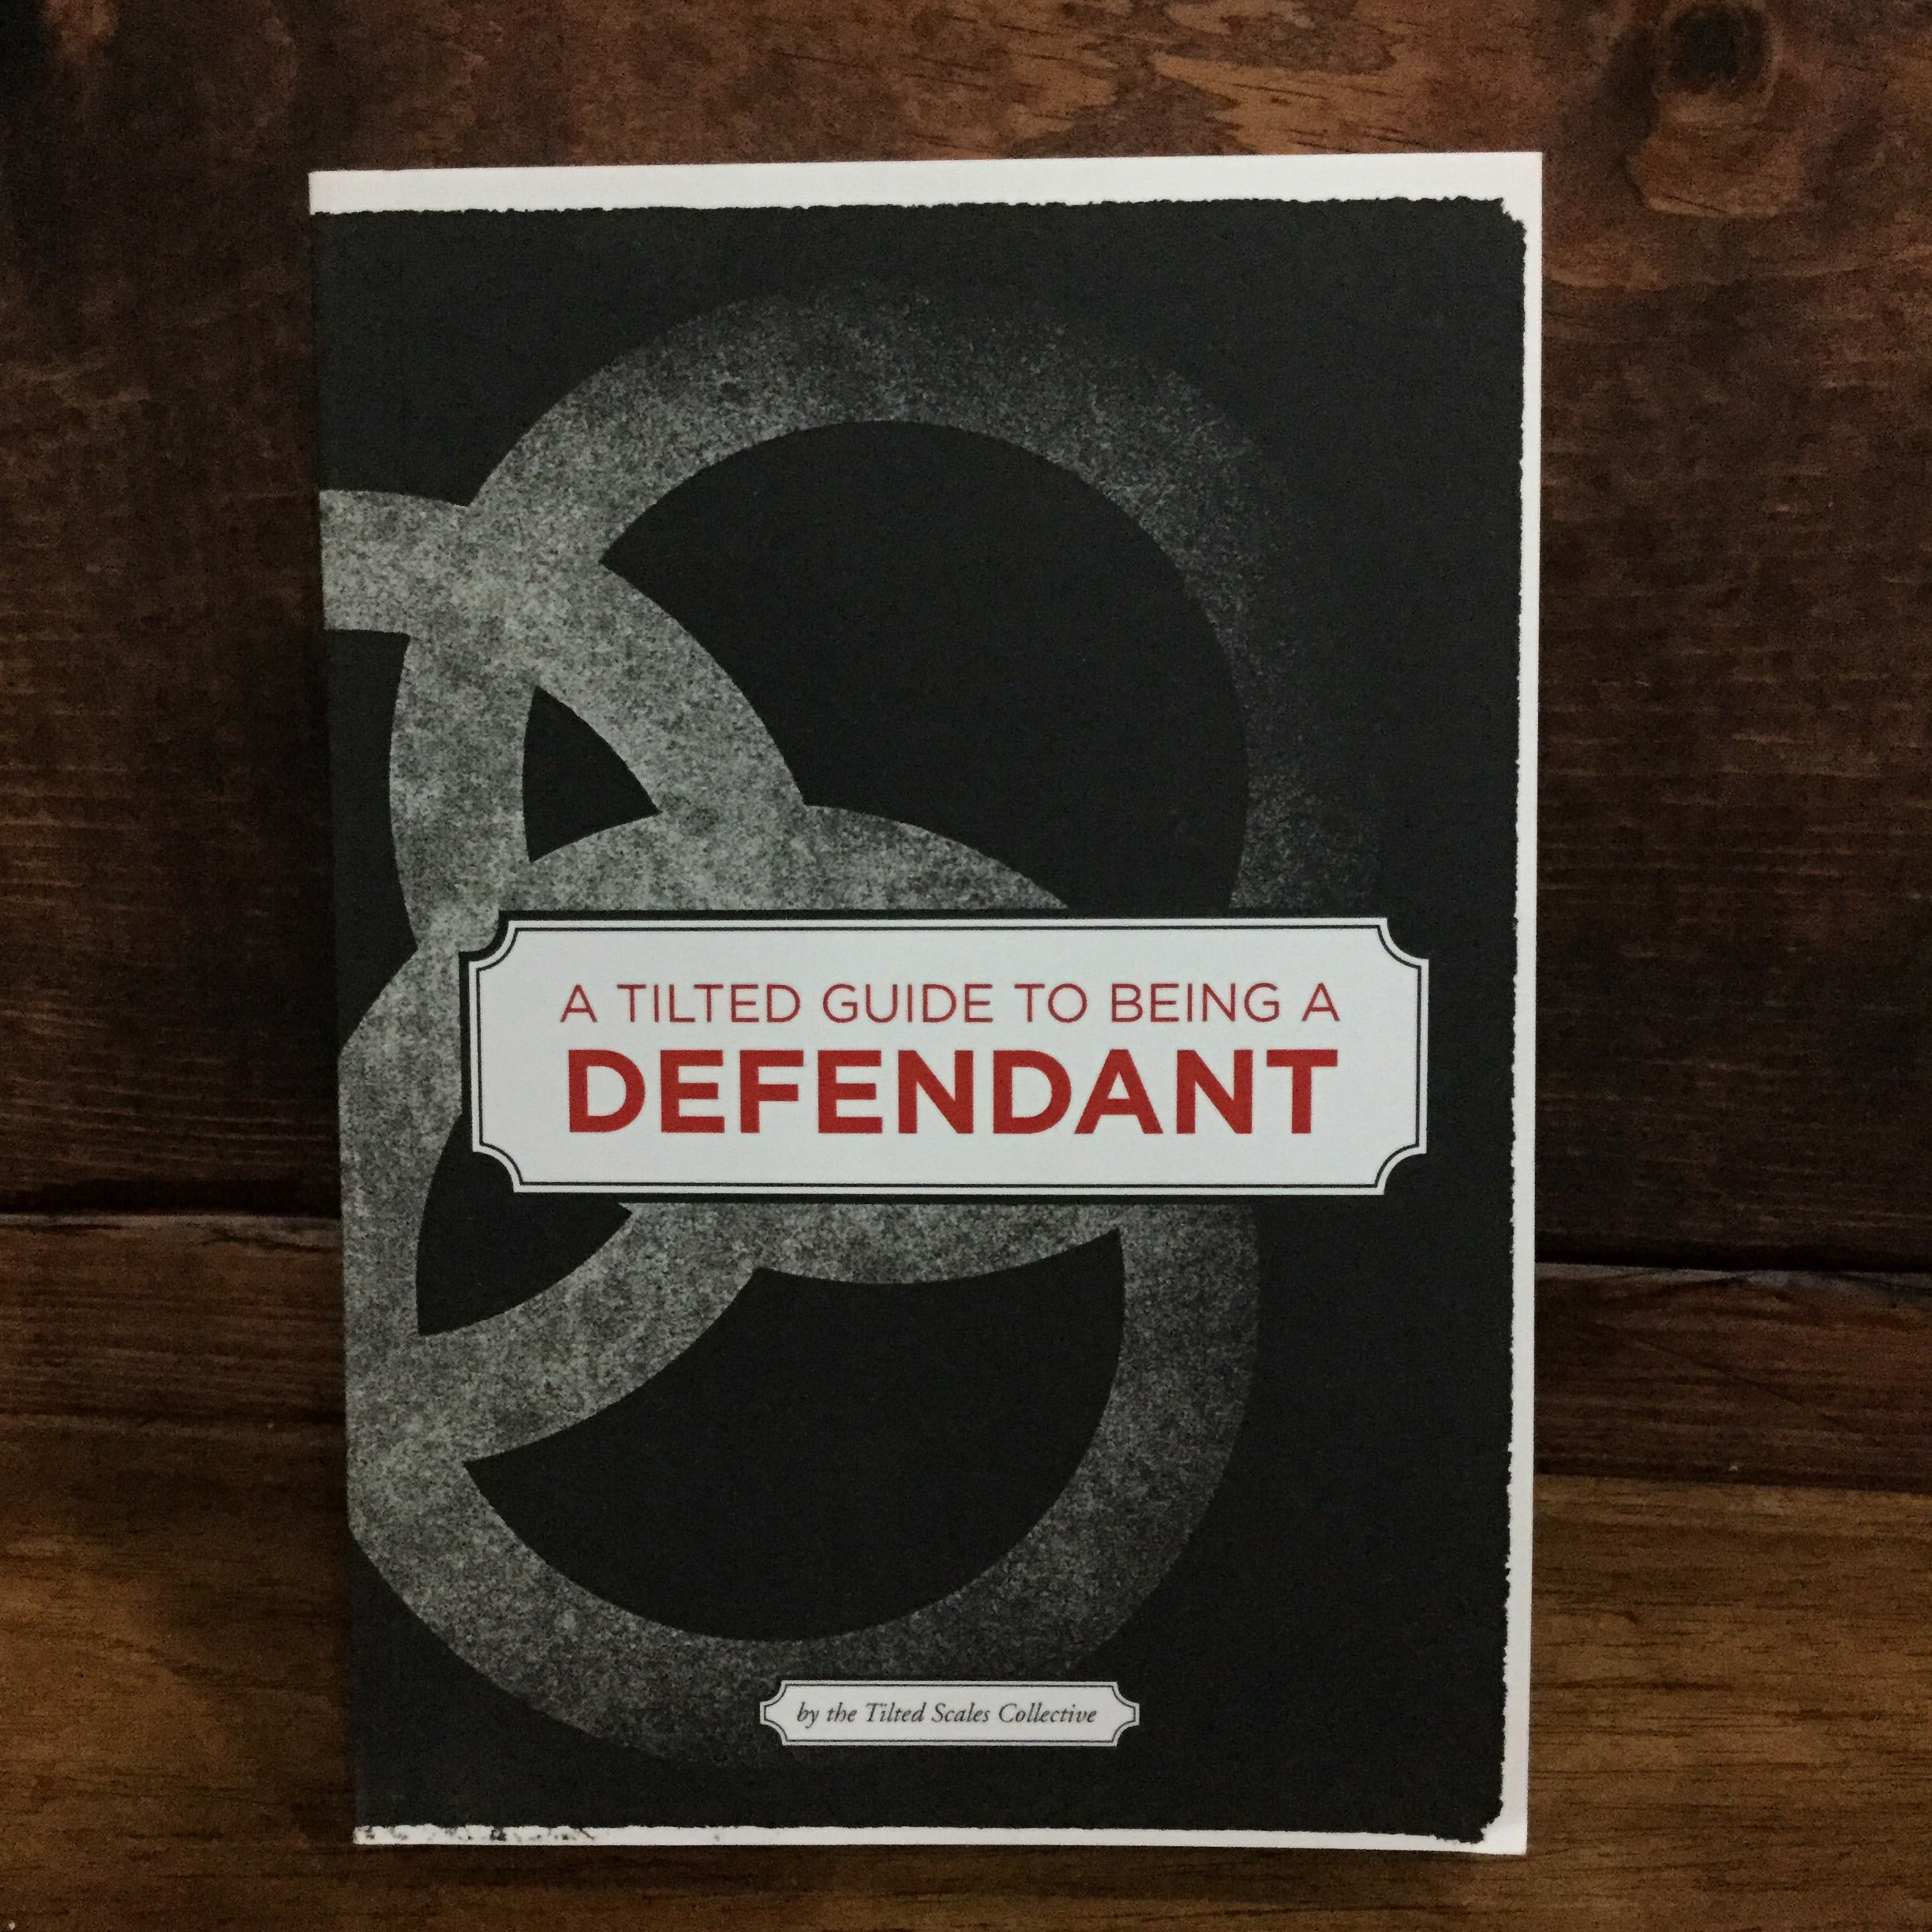 A Tilted Guide to Being a Defendant | AK PRESS | Chico,CA at Sustain - Gallery and Shop - Chicago, IL